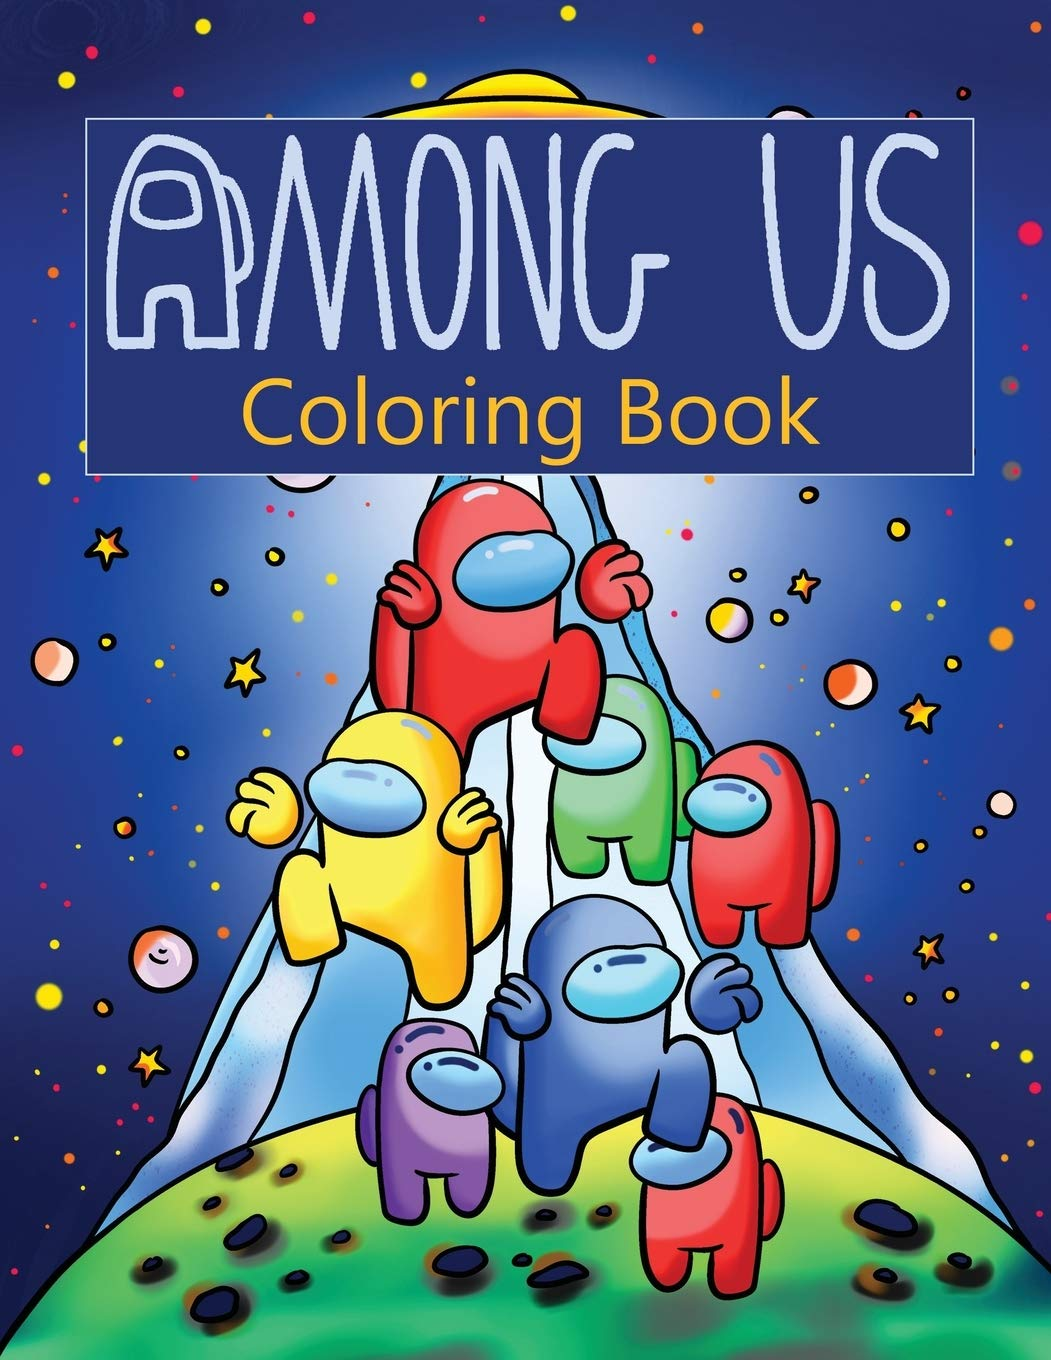 Among Us Coloring Book Over 50 Pages Of High Quality Among Us Colouring Designs For Kids And Adults New Coloring Pages It Will Be Fun Parker Jordan 9781952663932 Amazon Com Books